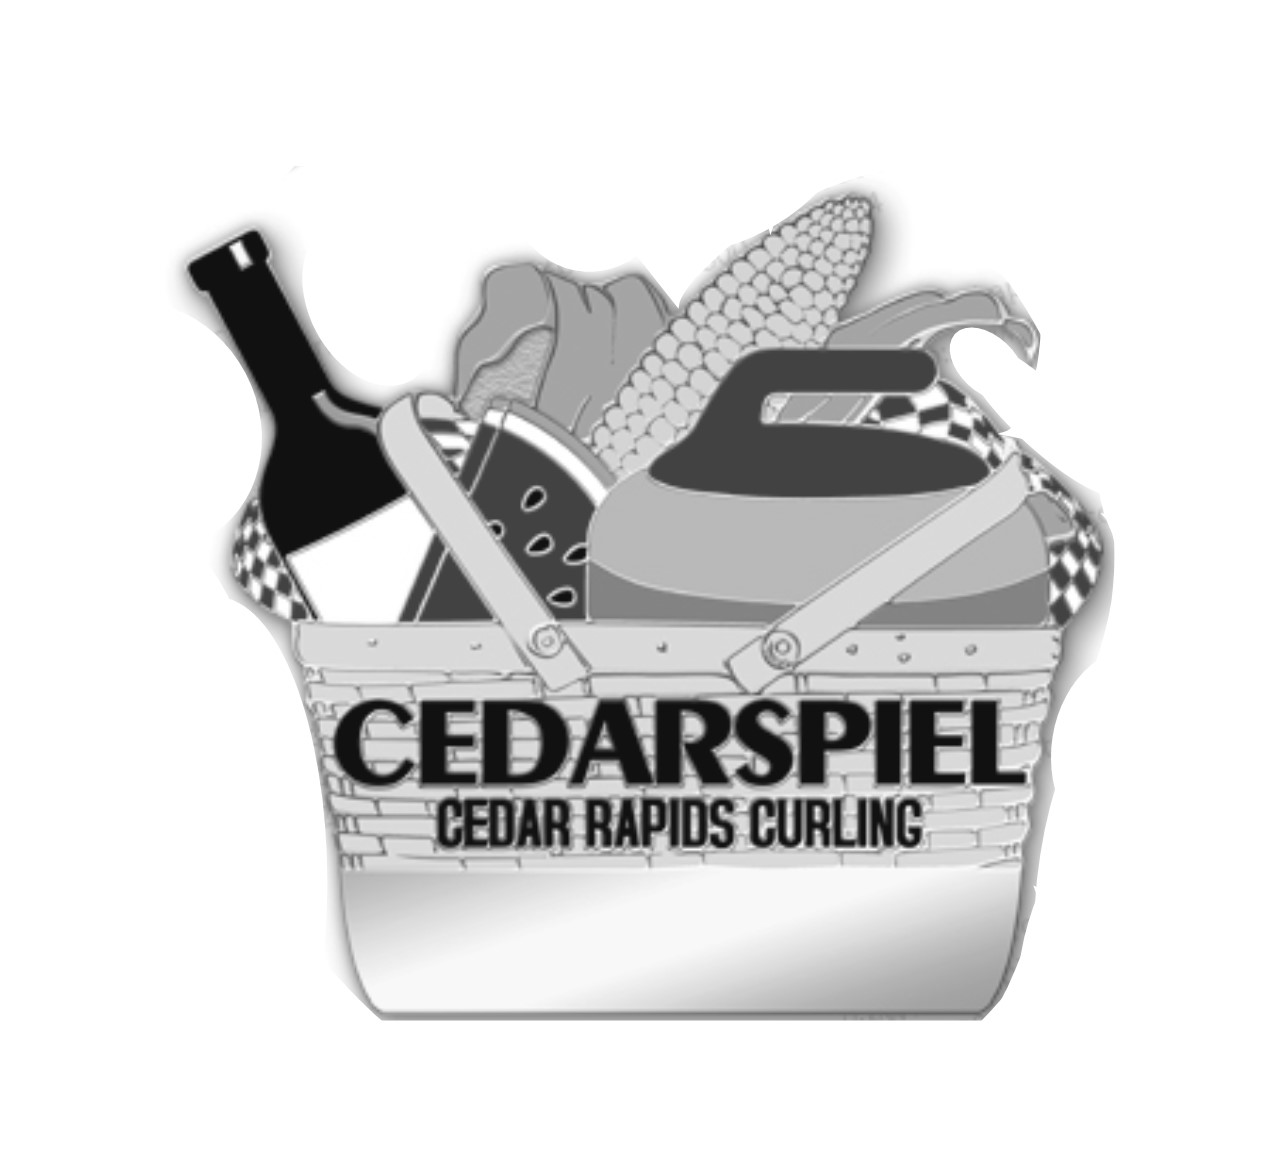 CedarSpiel 2019 Registration